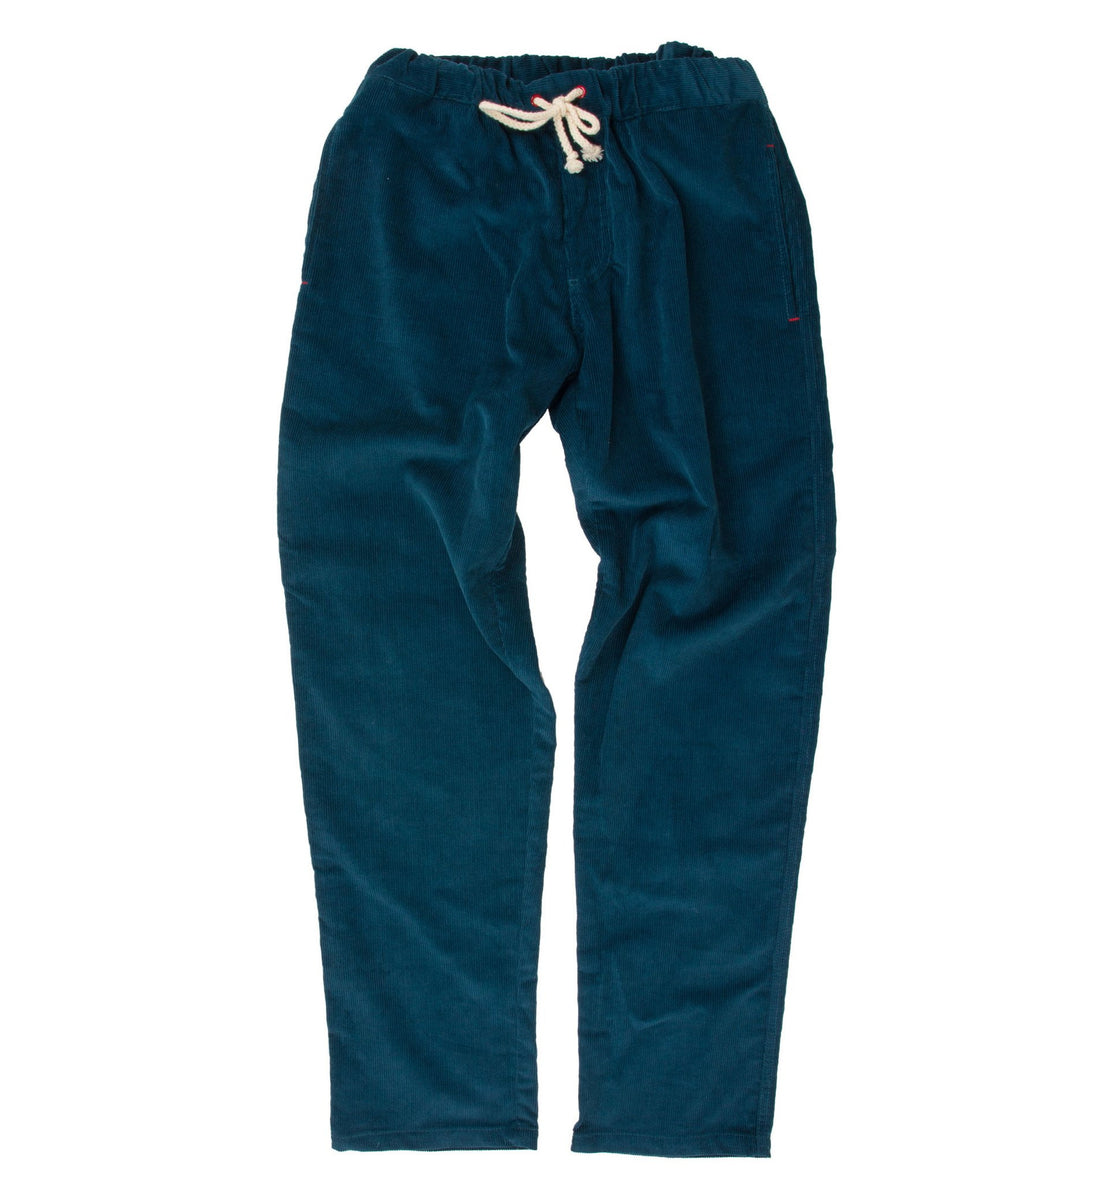 Canyon Pant - Apparel: Men's: Pants - Iron and Resin